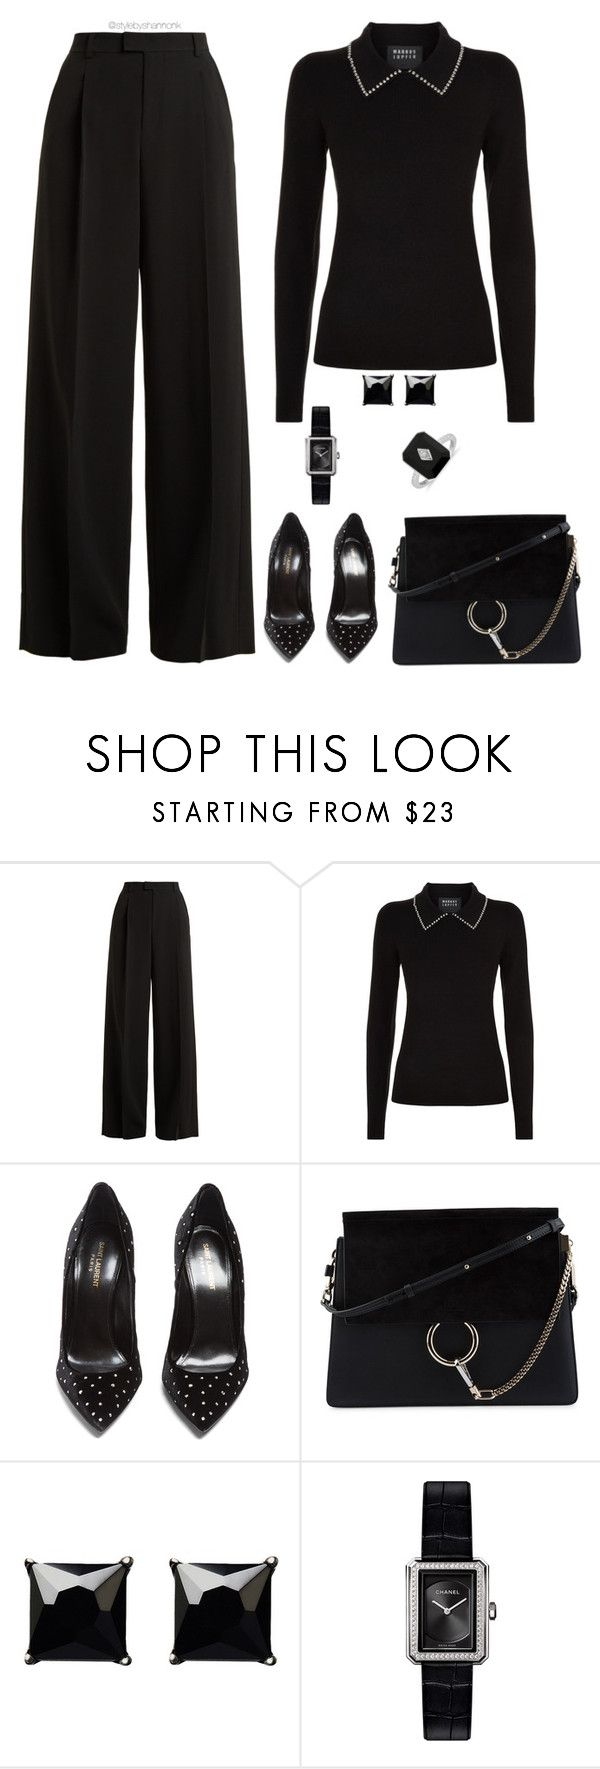 """""""All Black Everything"""" by stylebyshannonk ❤ liked on Polyvore featuring RED Valentino, Markus Lupfer, Yves Saint Laurent, Chloé, Witchery and Chanel"""